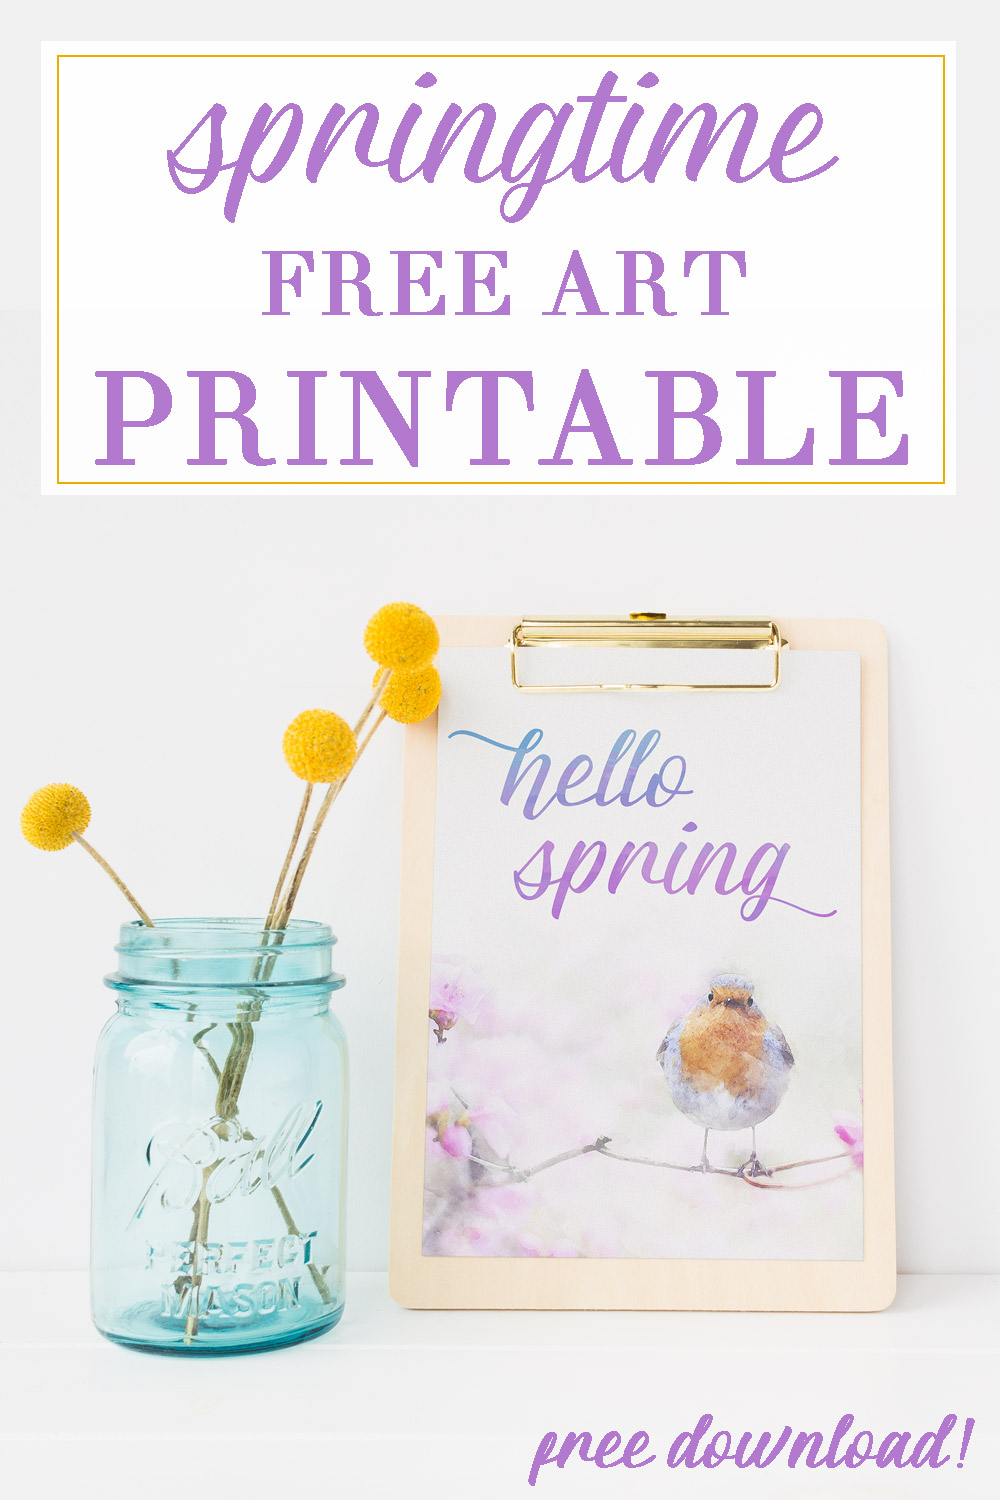 Looking for easy, affordable spring art? This gorgeous watercolor is free for you to download at www.theweatheredfox.com #spring #printable #decor